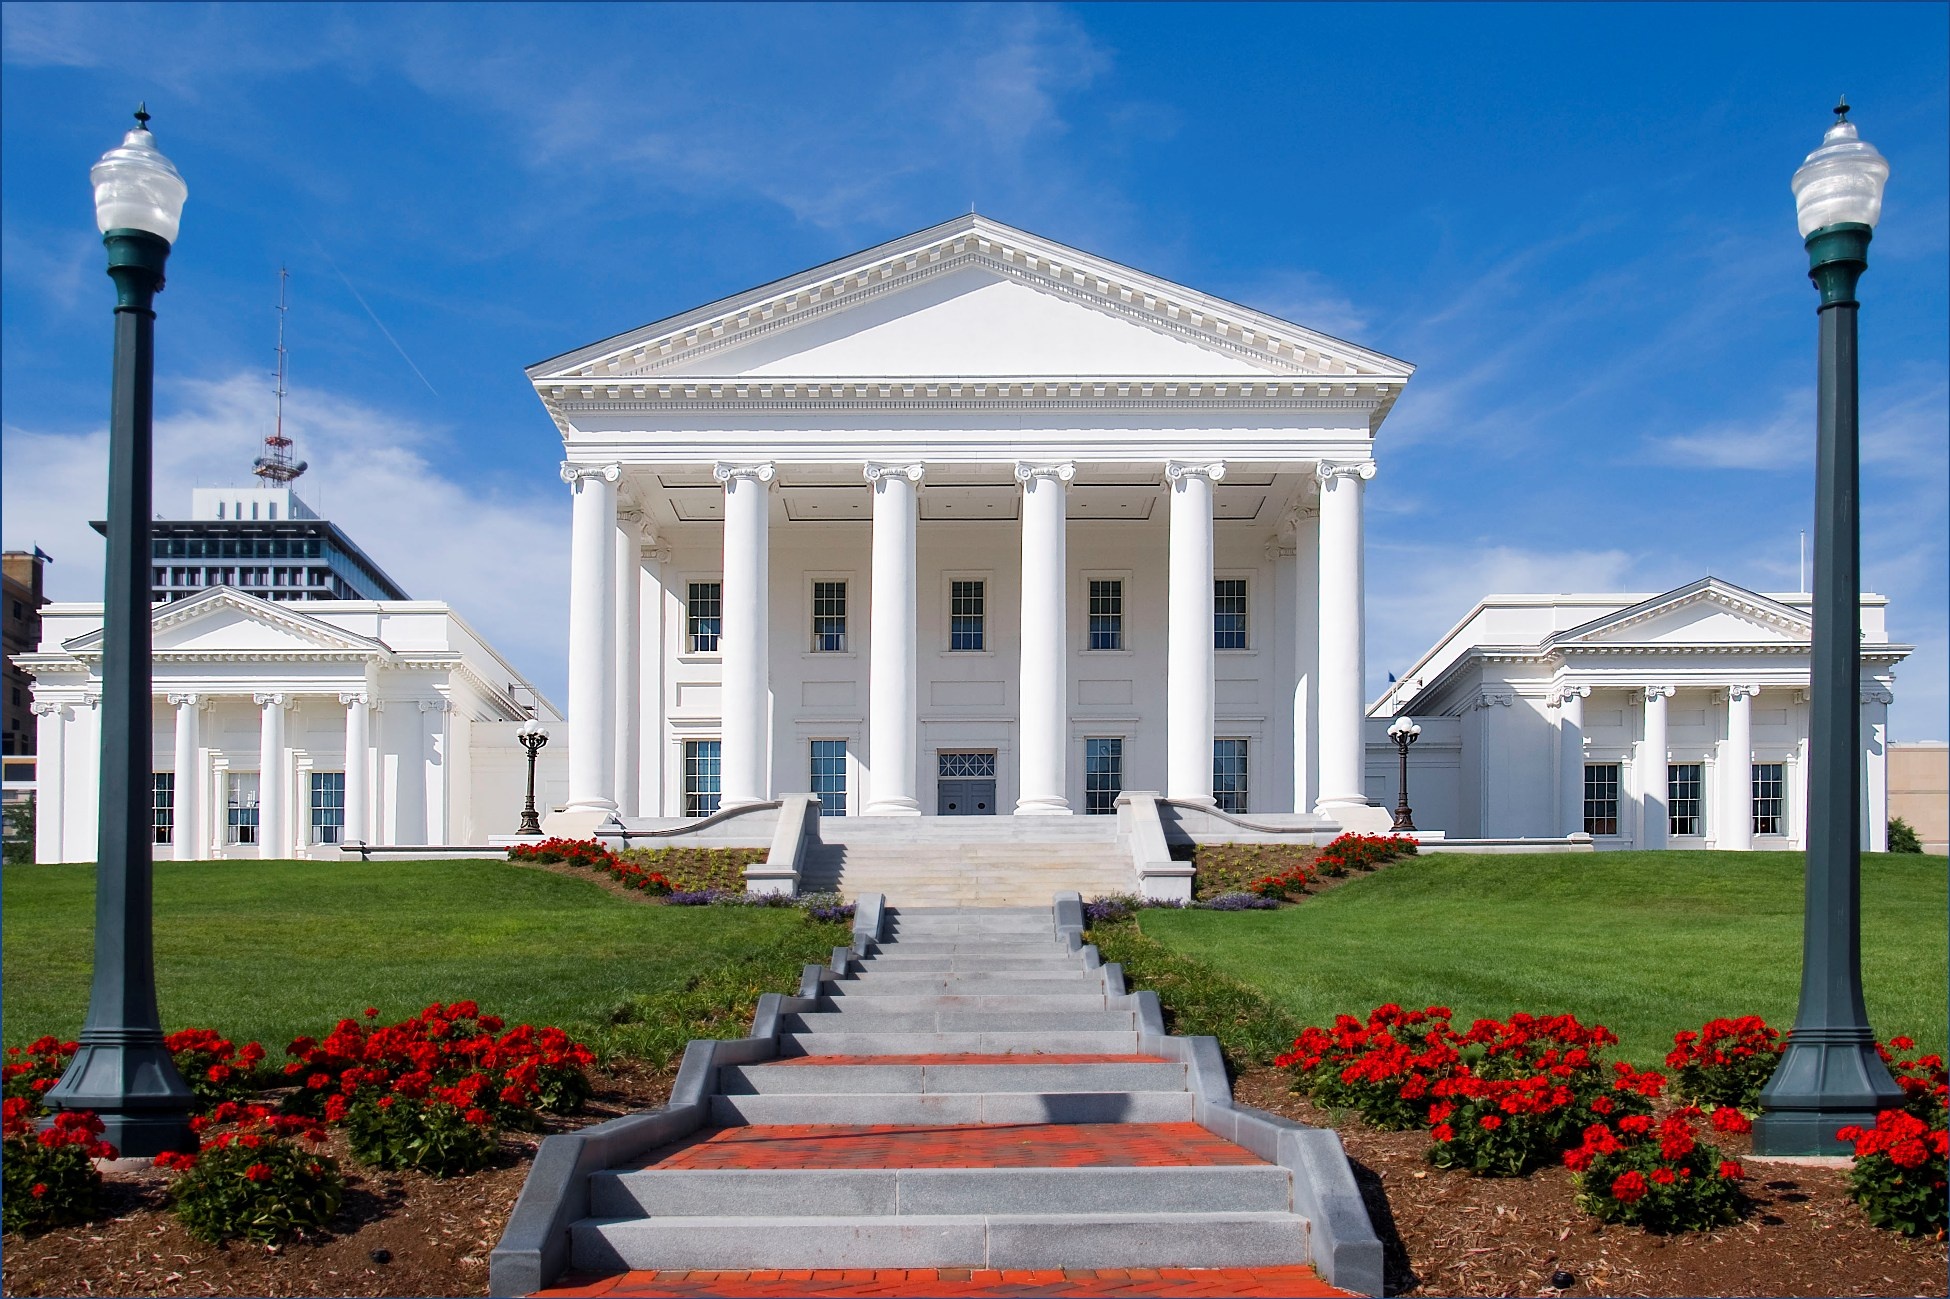 The Virginia General Assembly is back in session